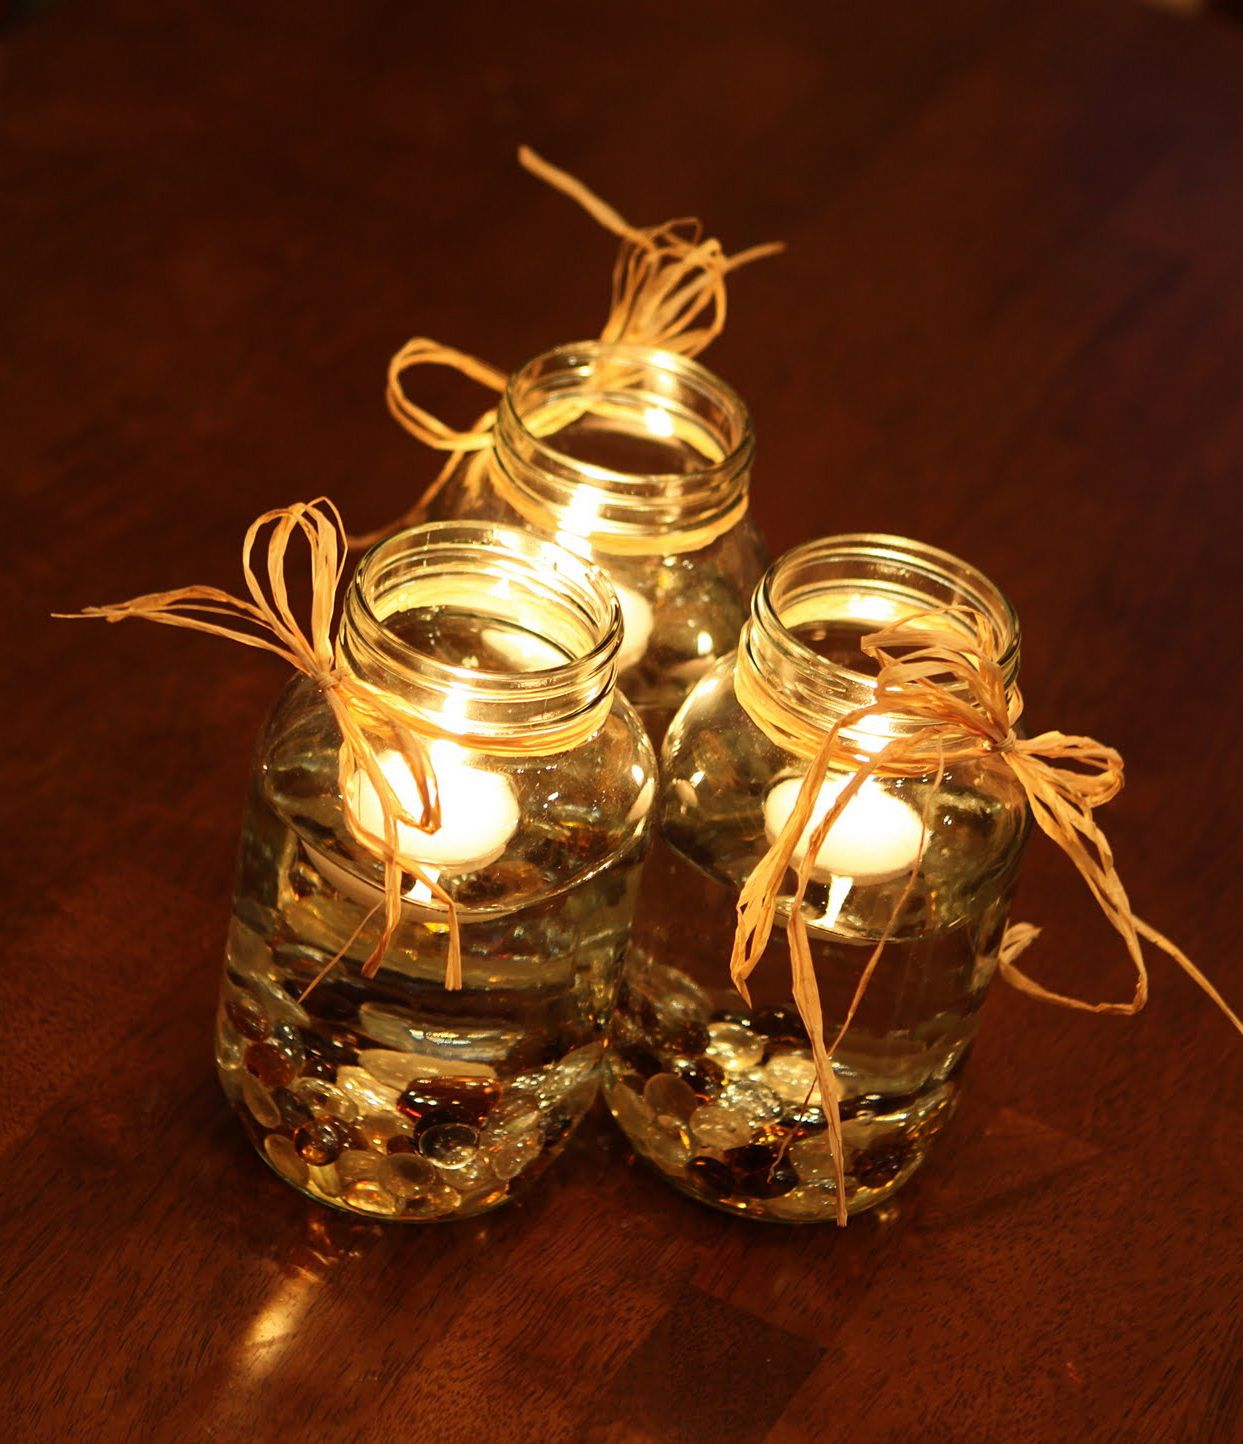 Rustic themed mason jar candles photo 4 pretty wedding rustic themed mason jar candles photo 4 pretty wedding centerpieces with mason jars and junglespirit Choice Image